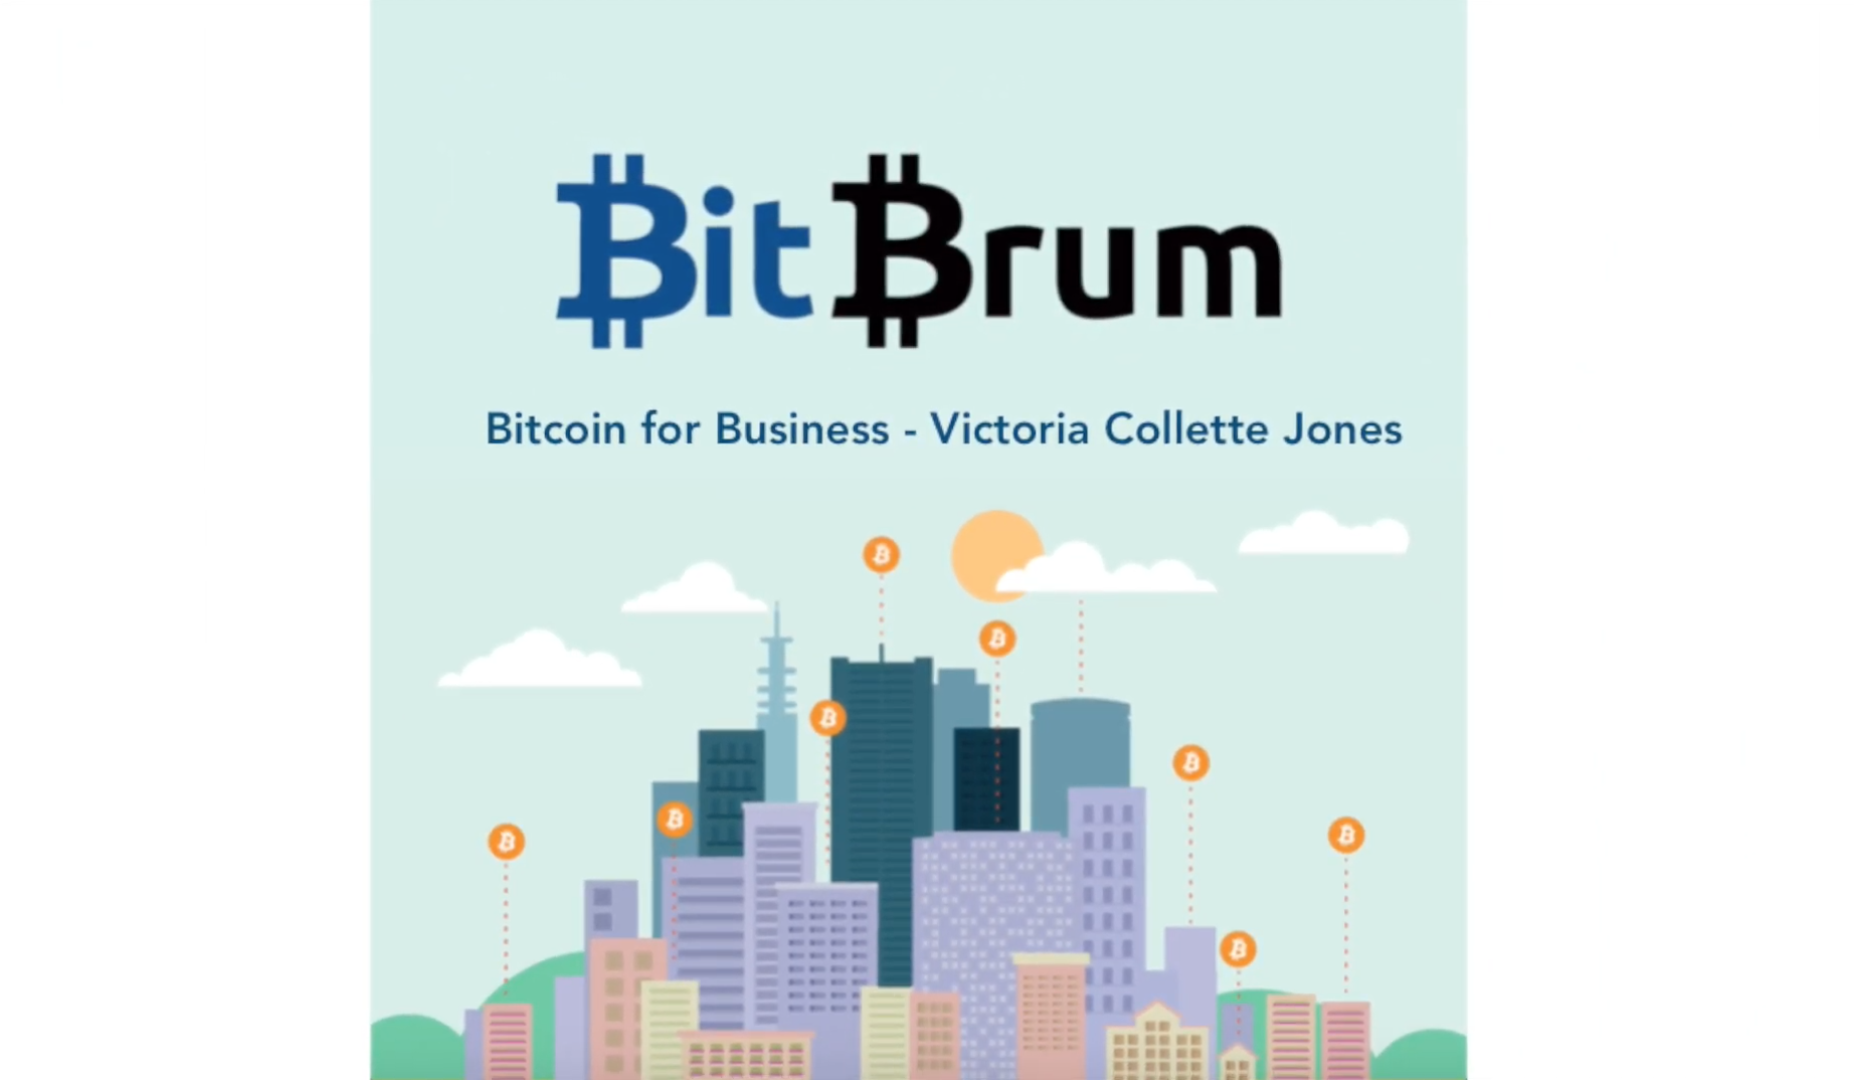 Title Page of BitBrum Talk - Bitcoin for Business